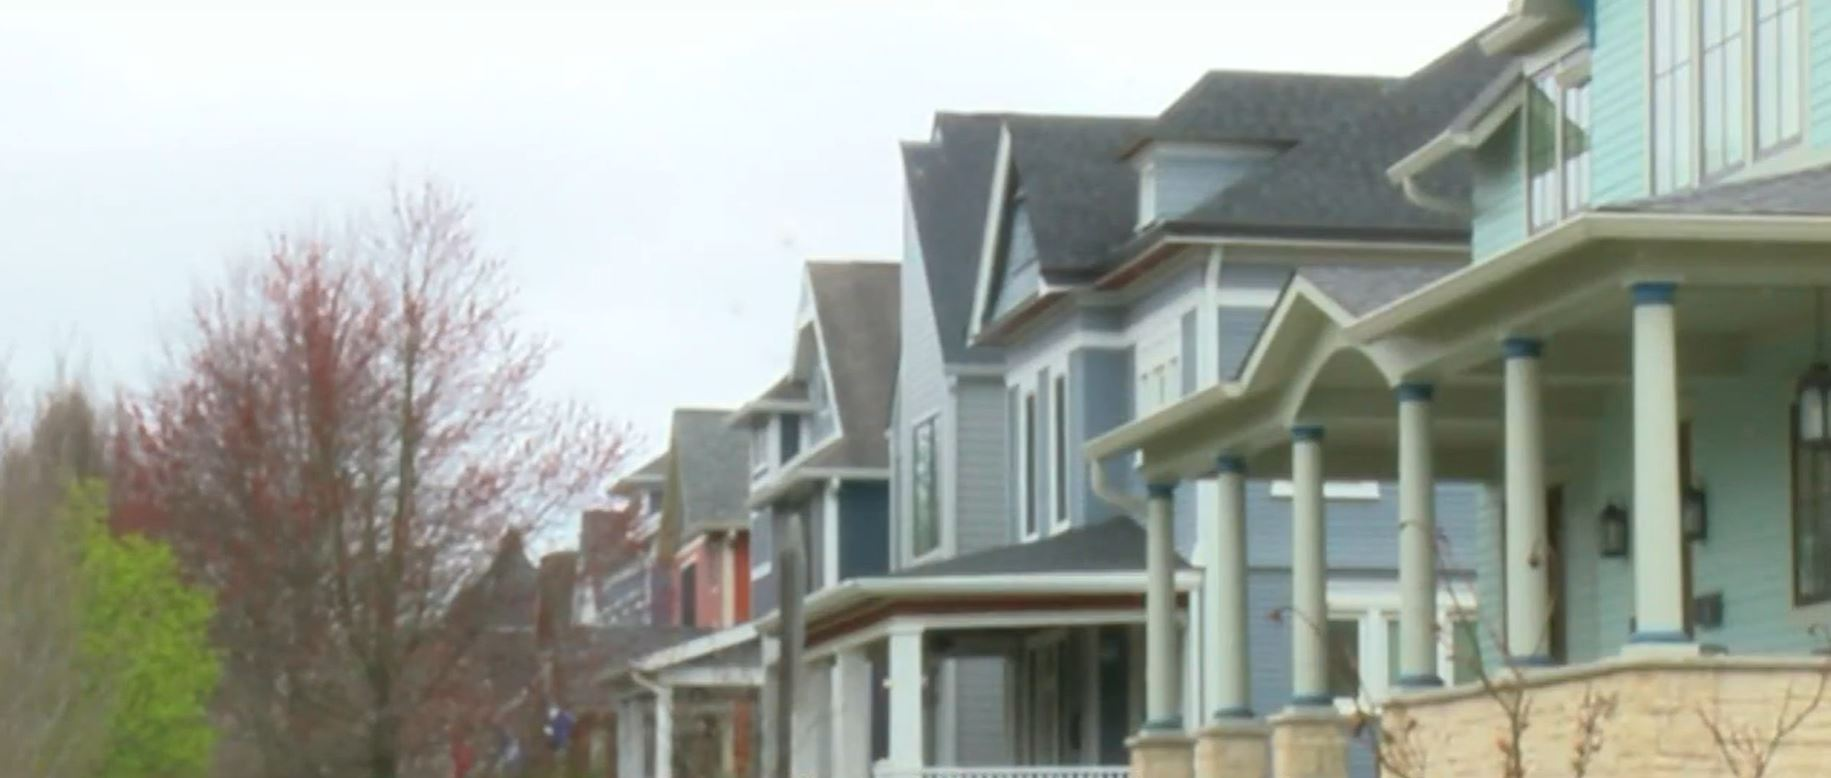 Housing coalition to meet, discuss end to eviction ...